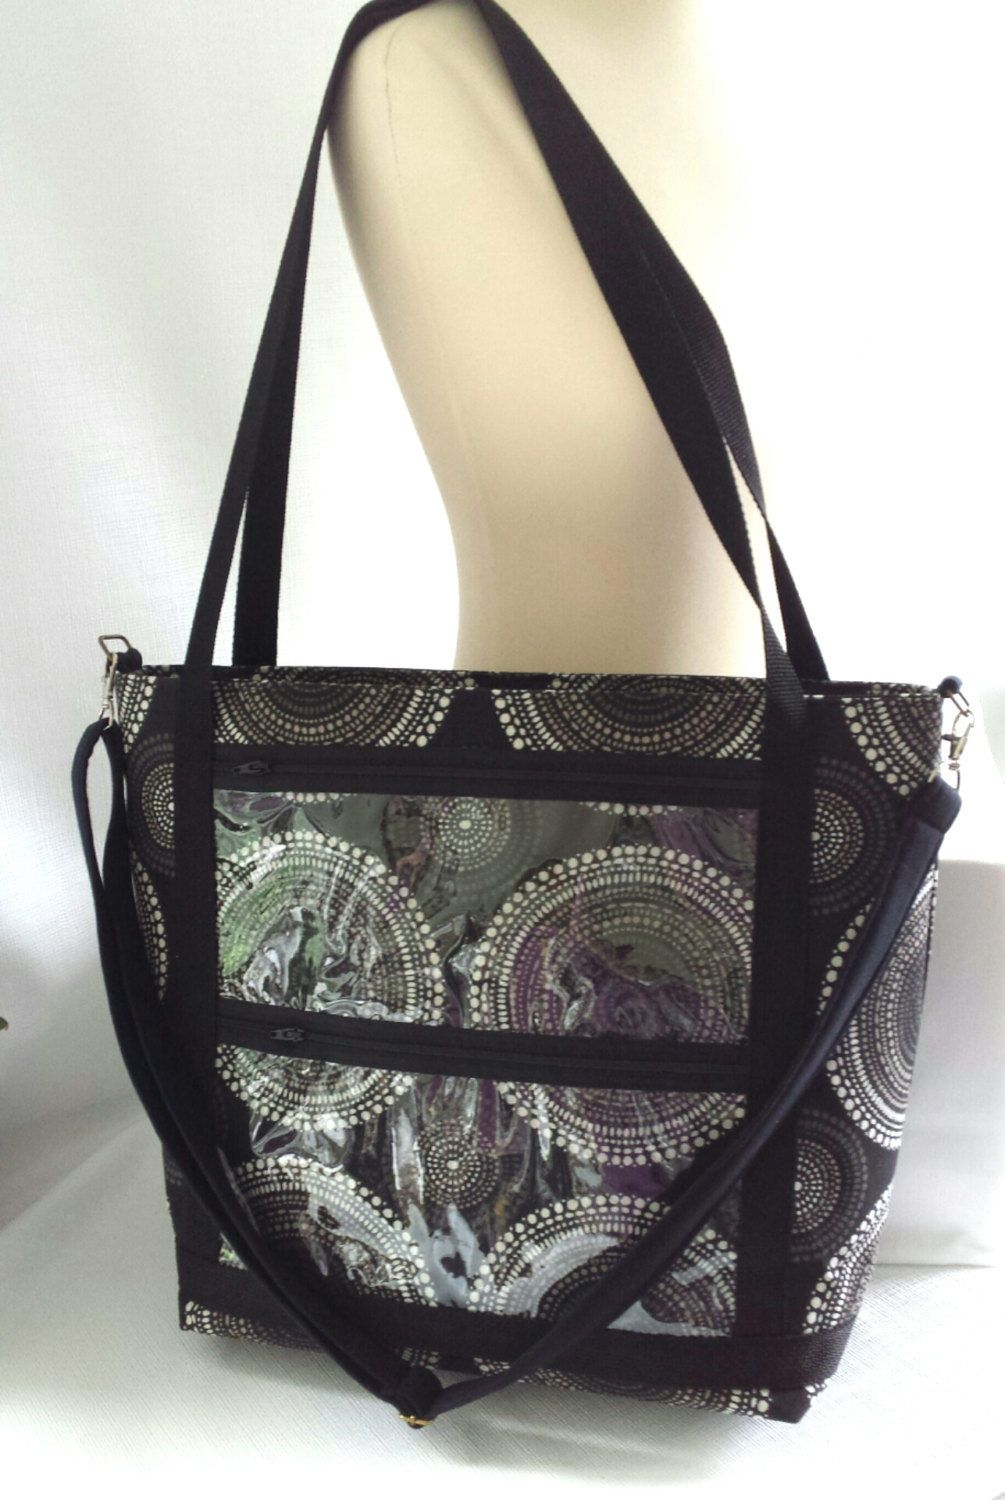 Consultant tote bag..Direct sales reps display catalogue